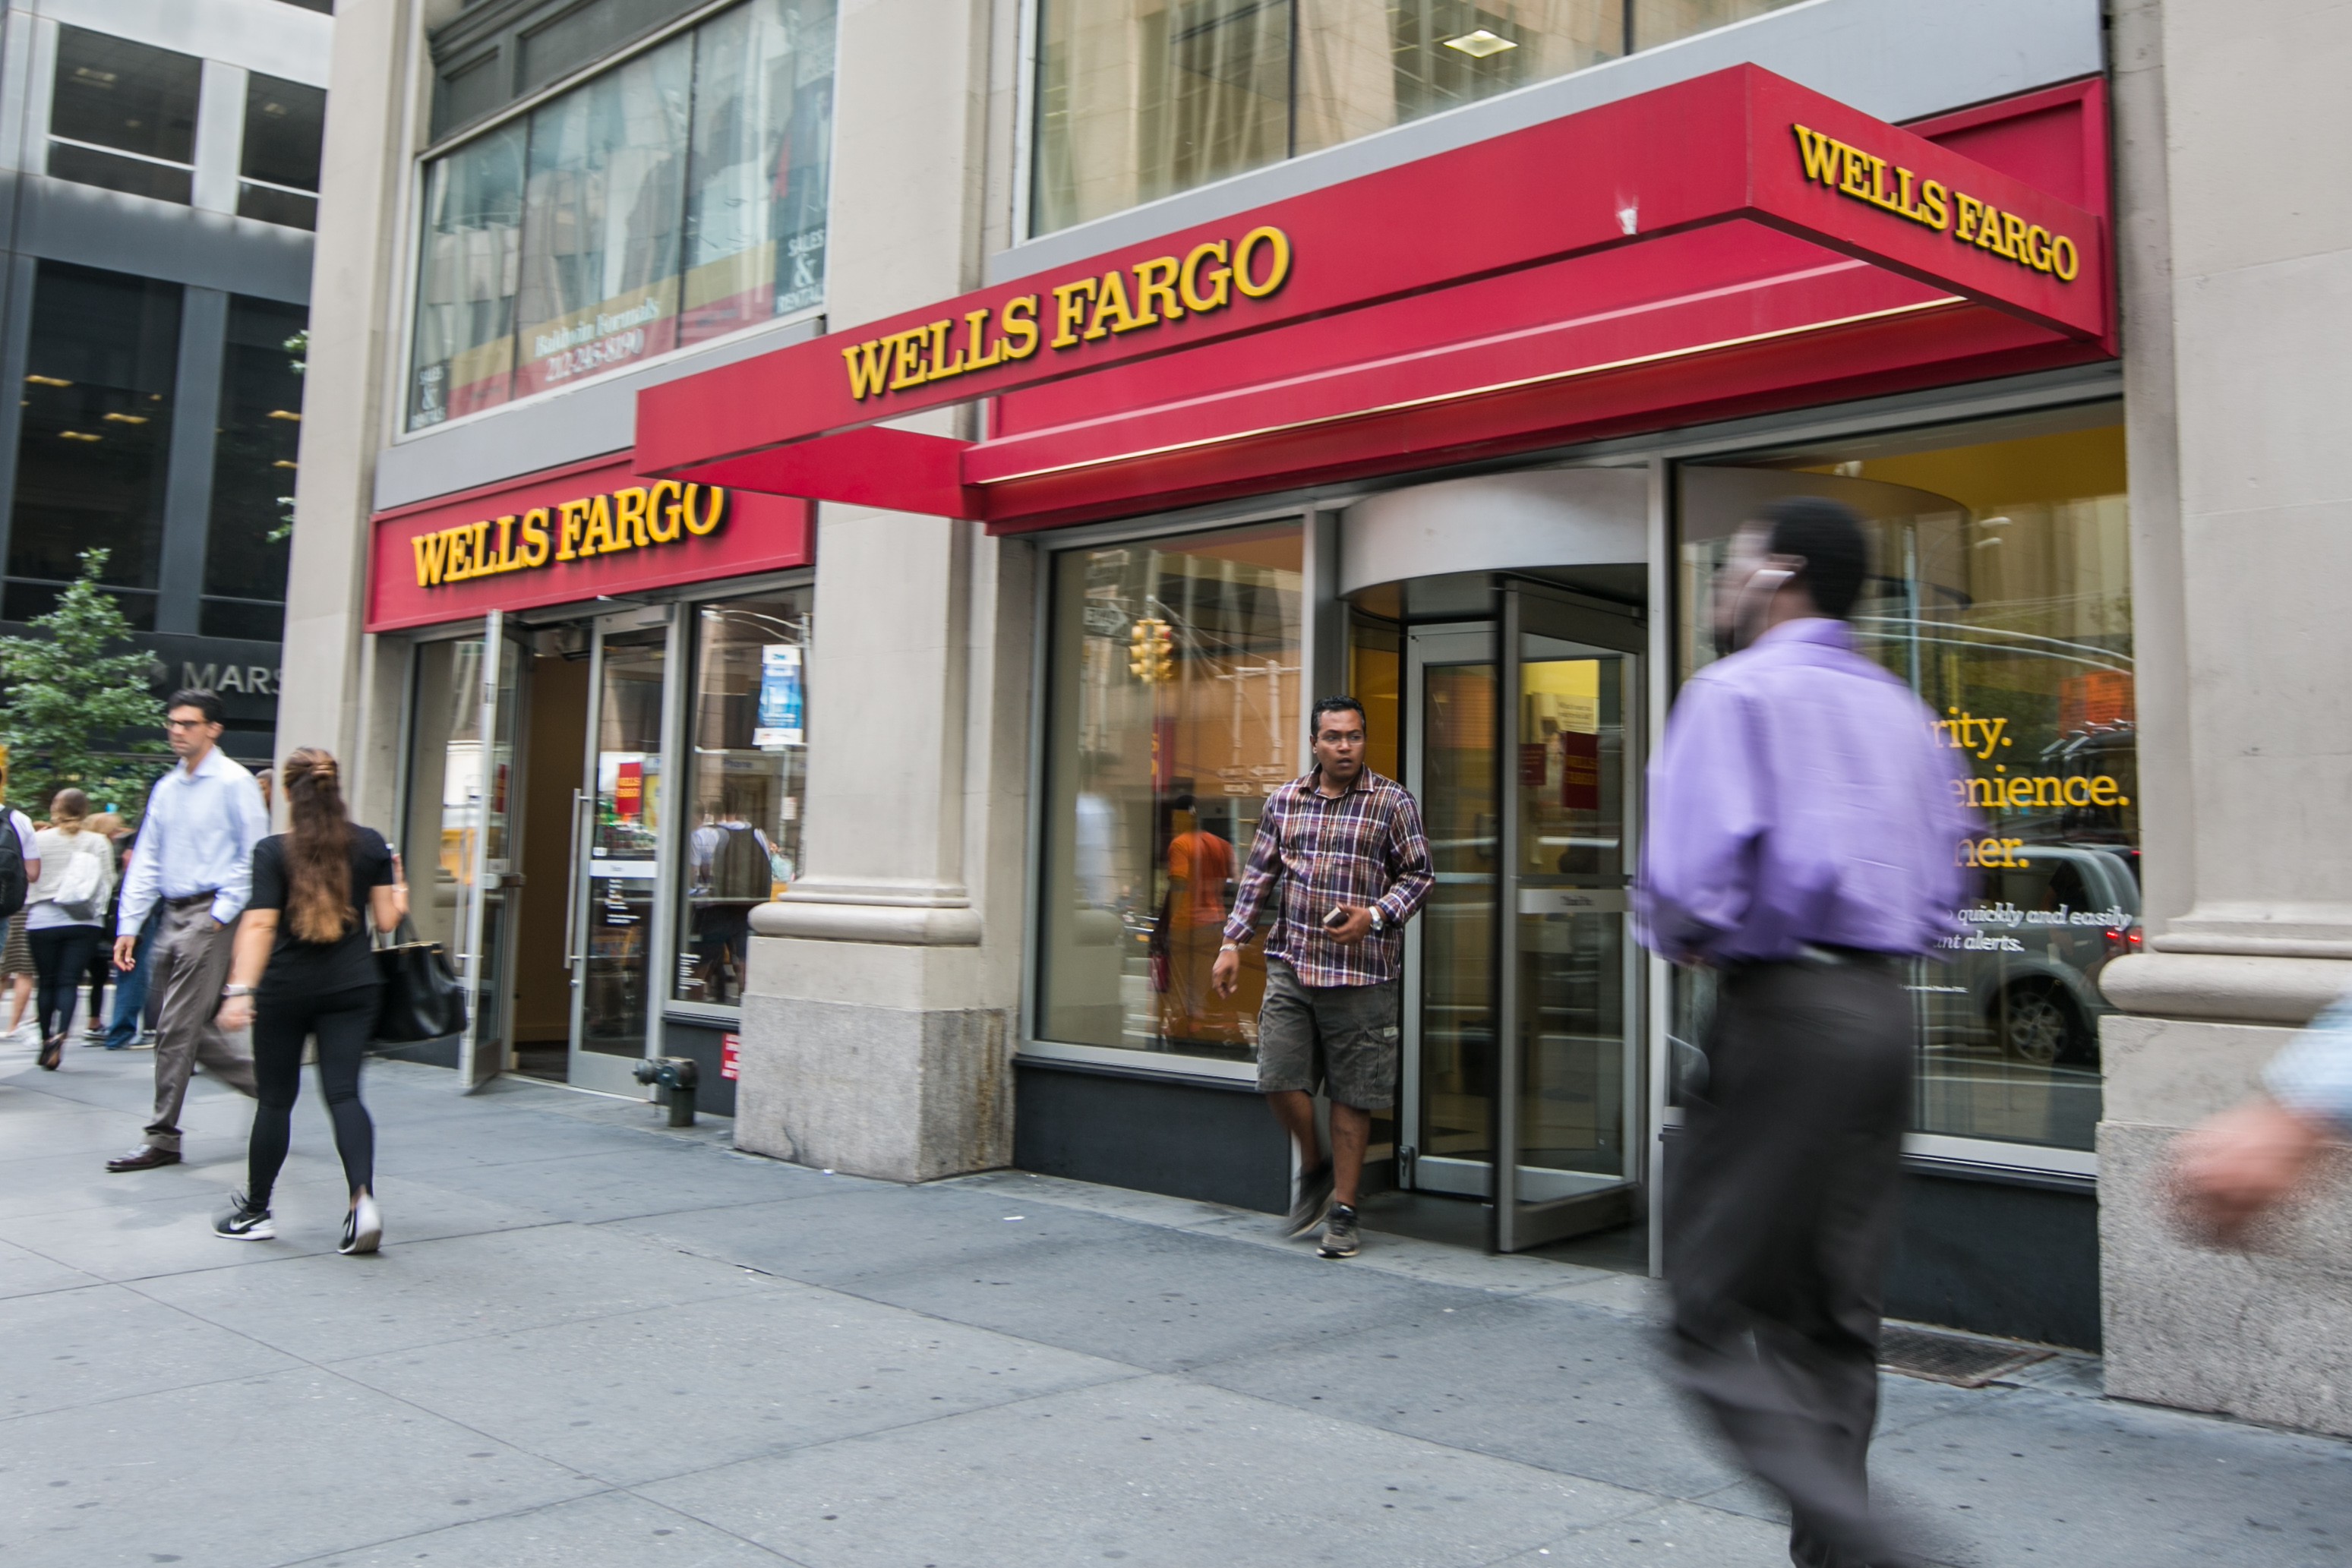 Senate Banking Committee in Outrage Over Wells Fargo 'Fraud'